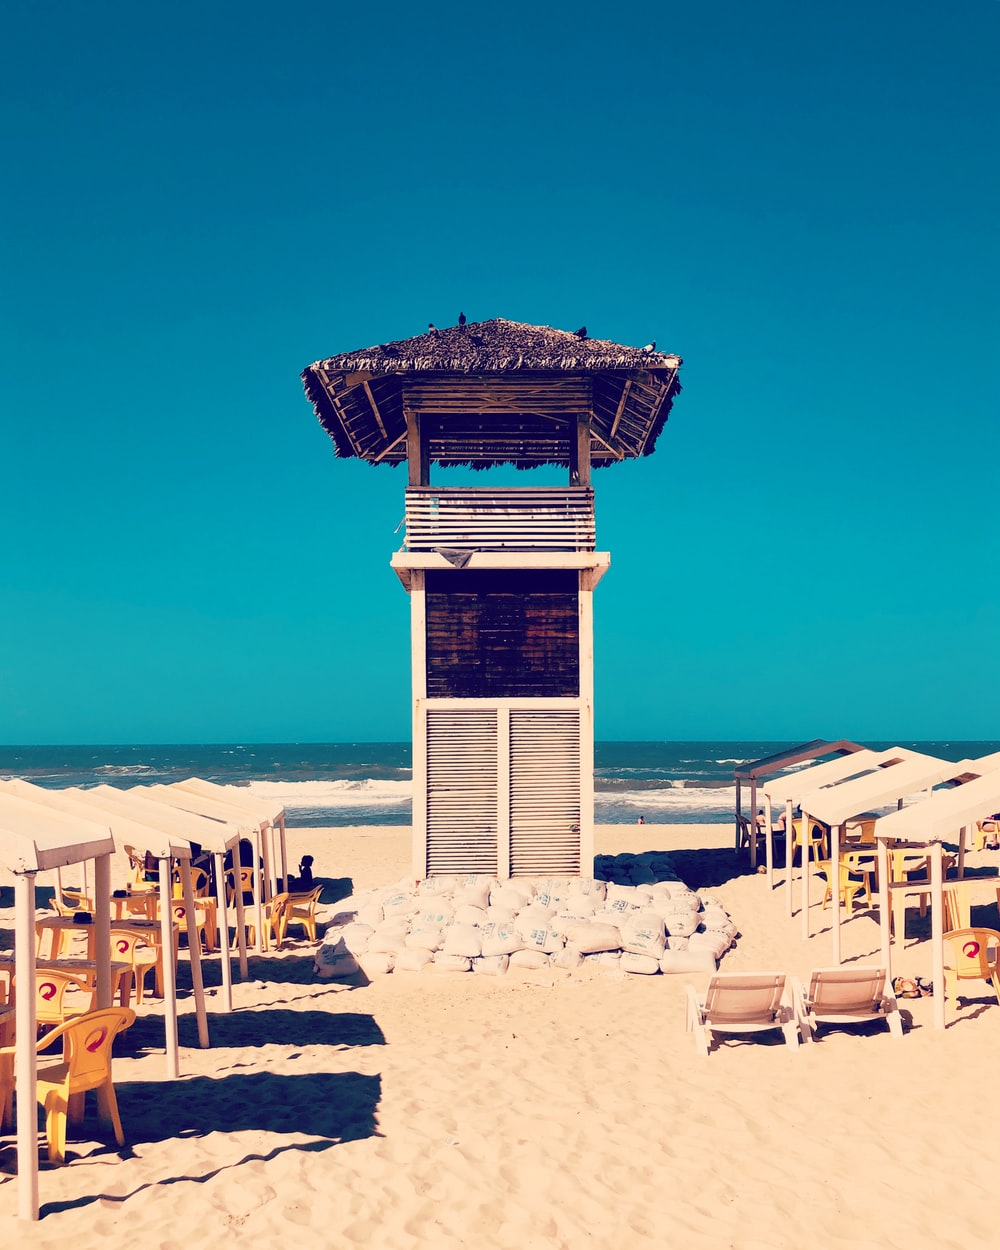 brown and white wooden lifeguard tower